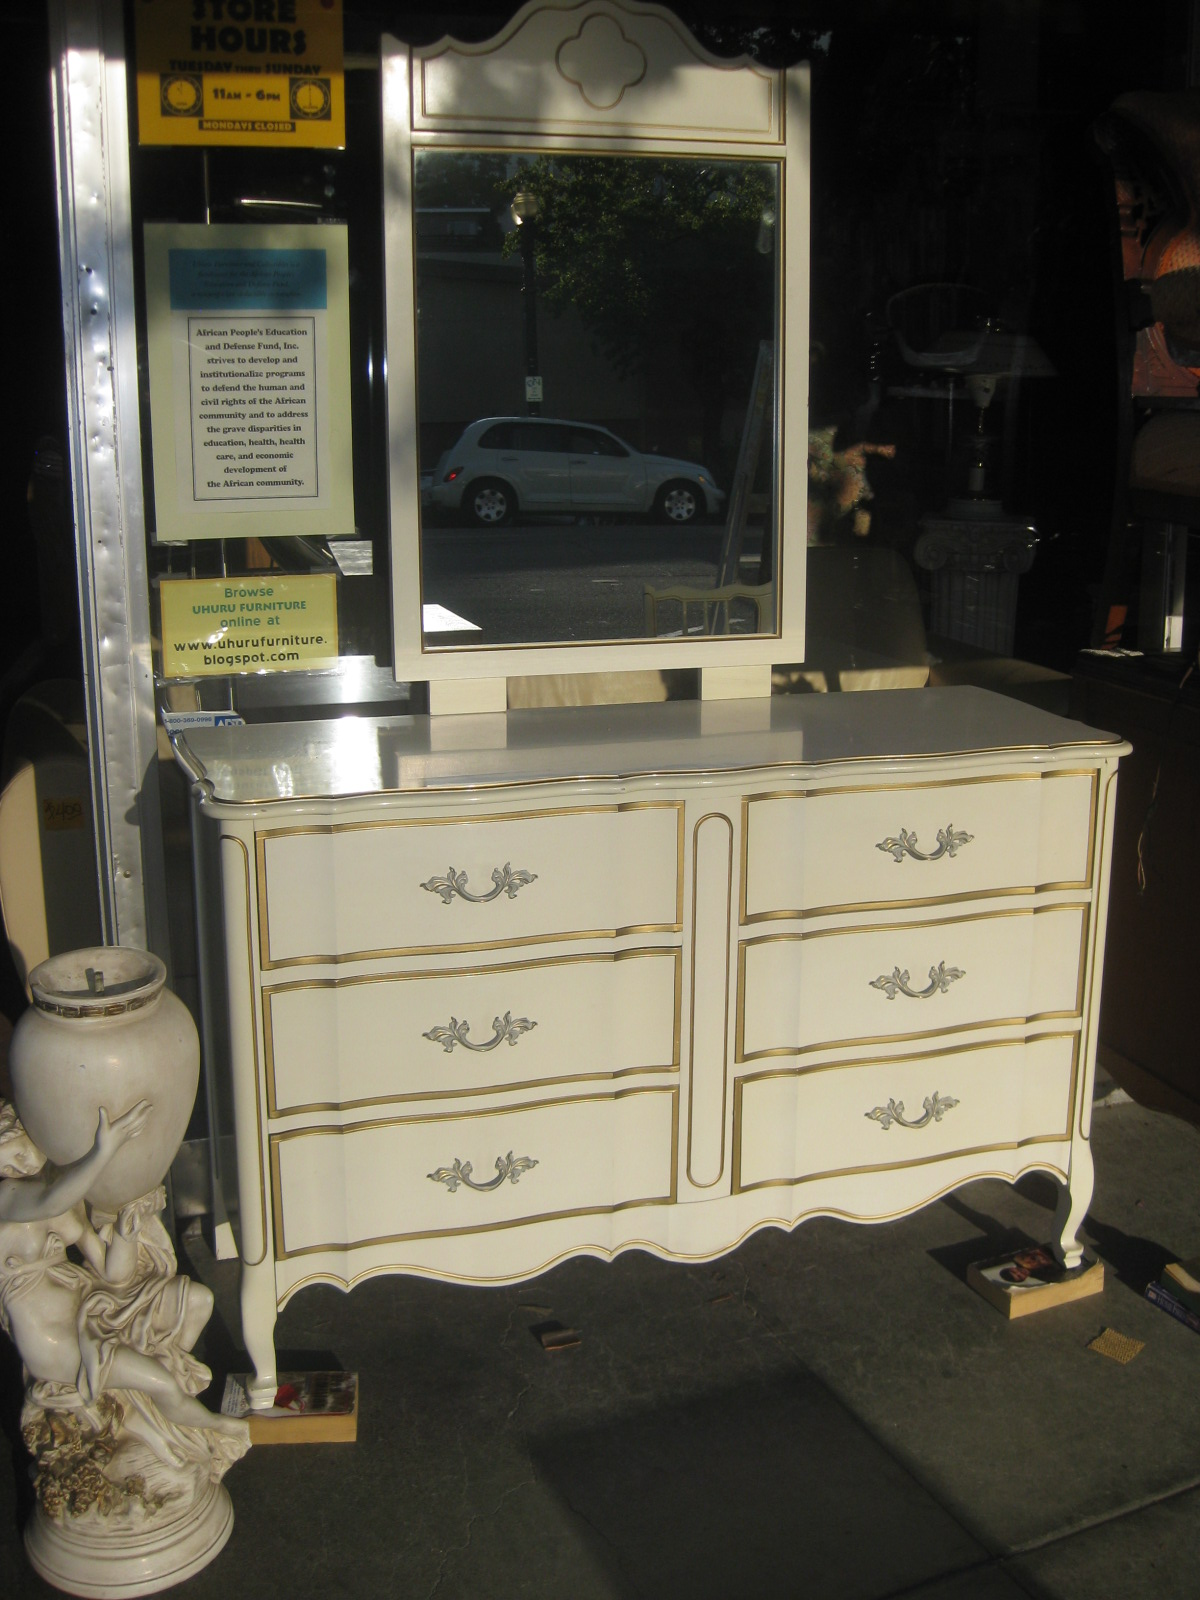 uhuru furniture & collectibles: sold - french provincial bedroom set - $150